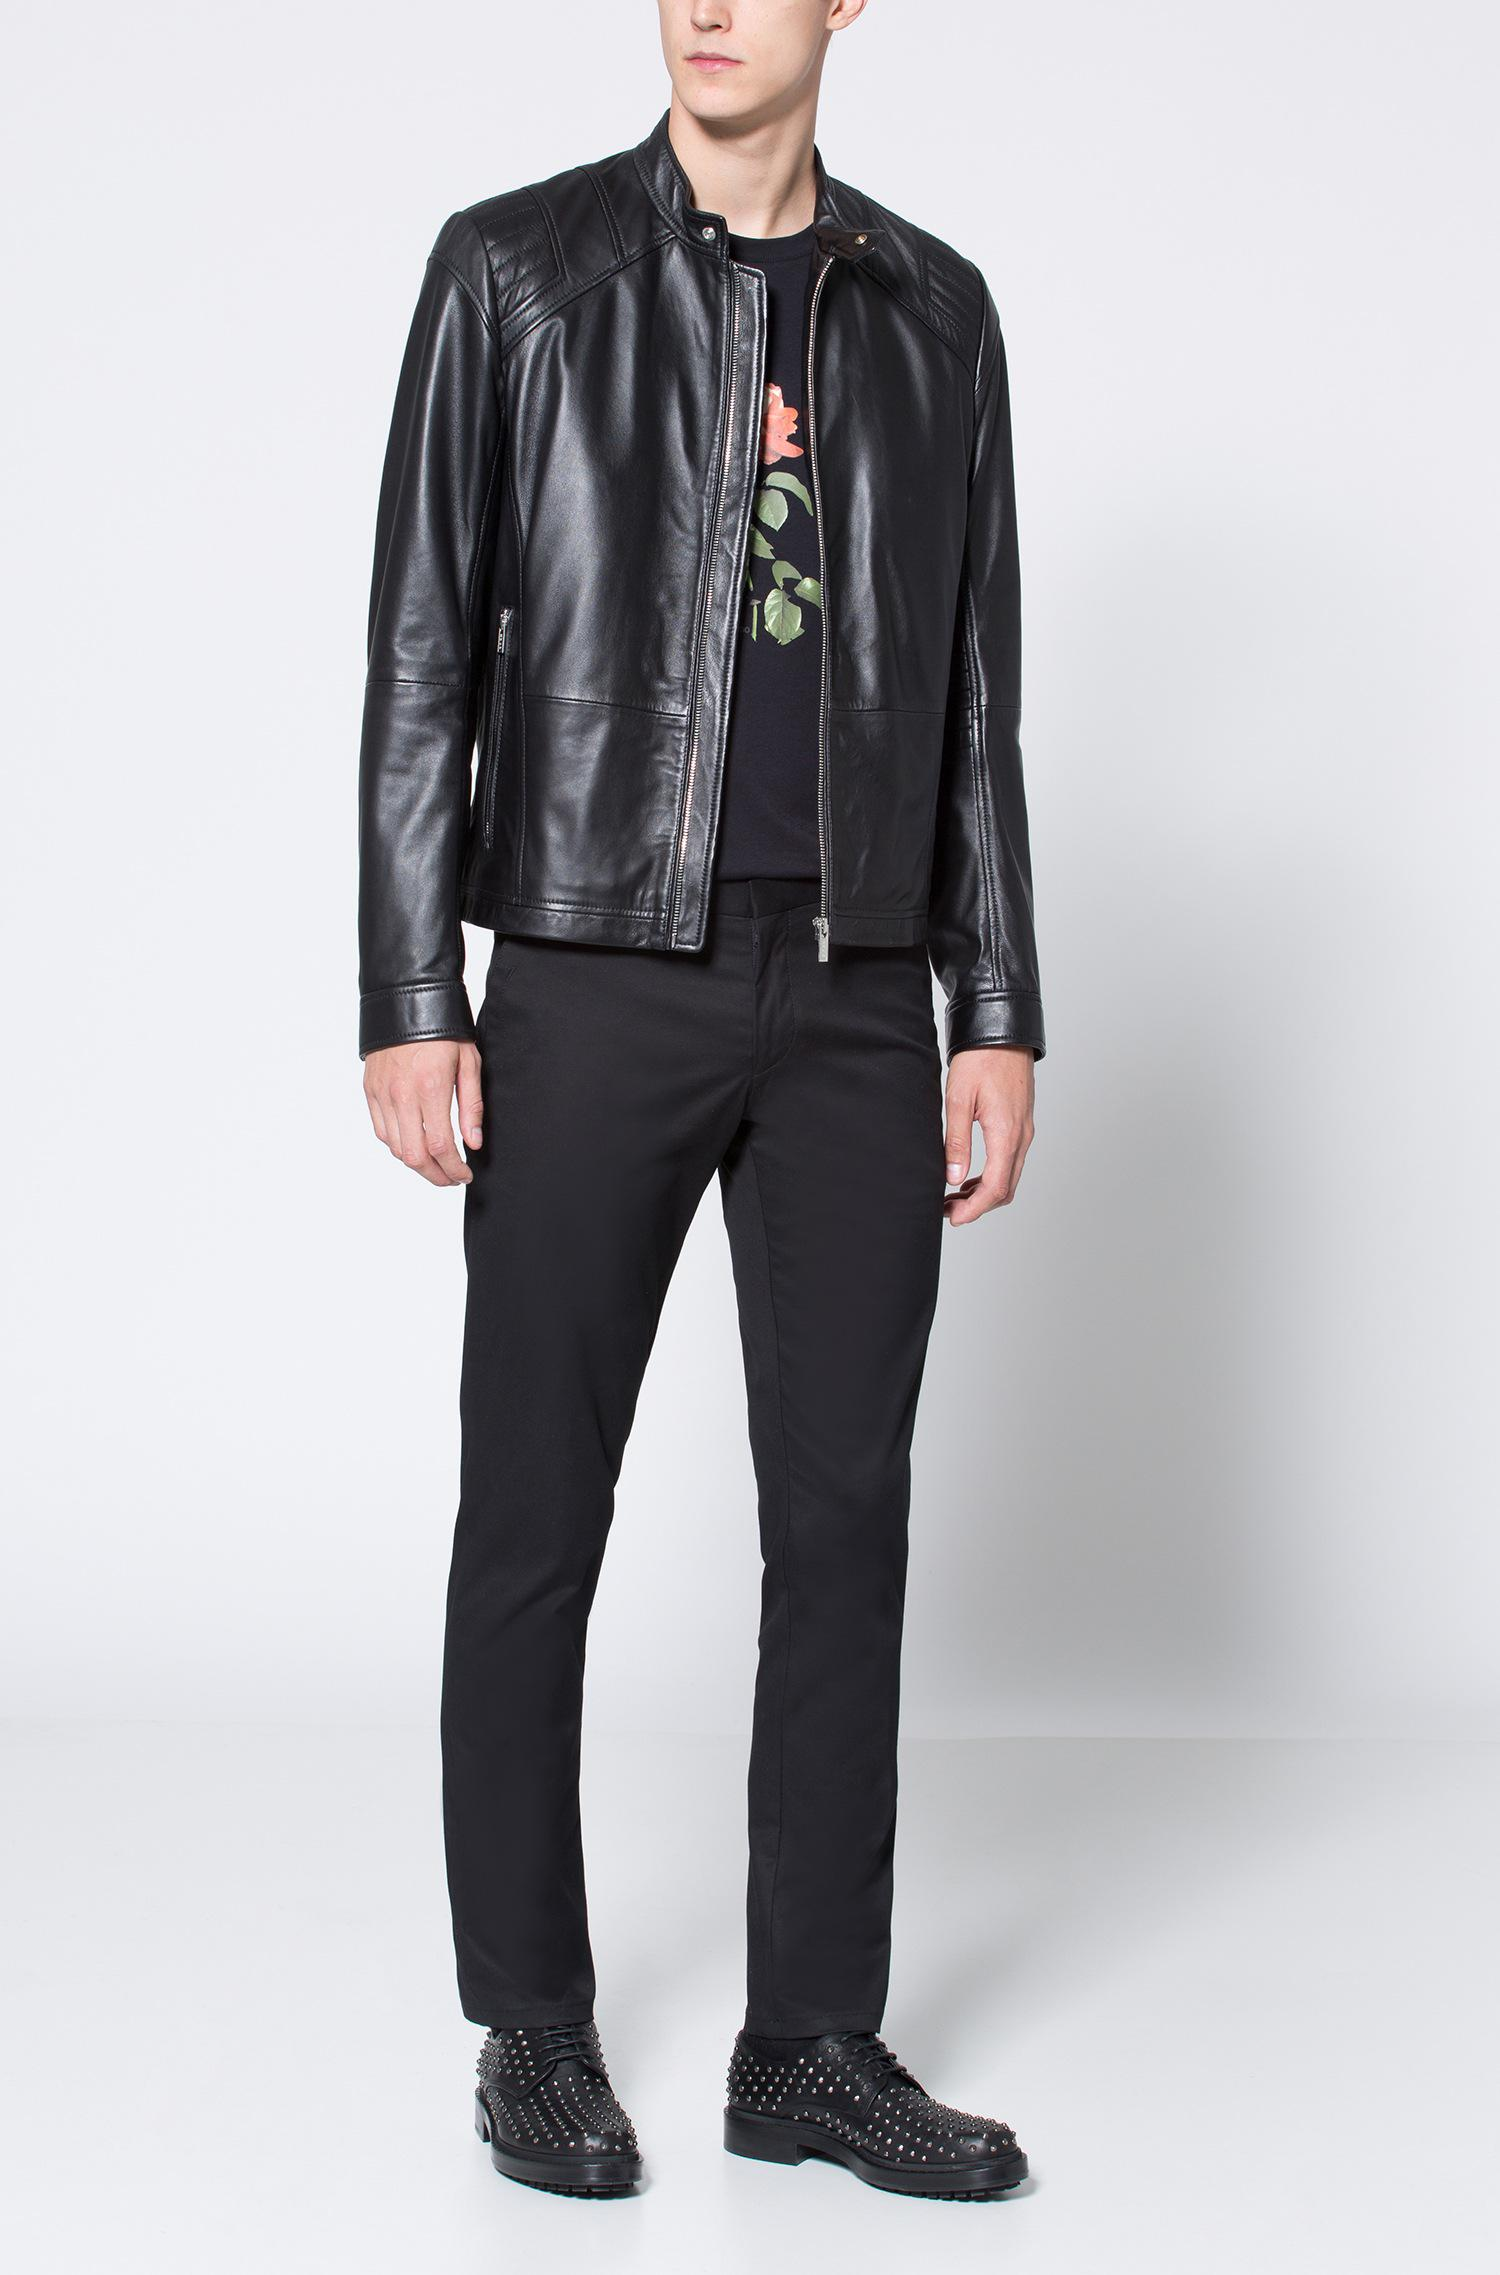 cc0ef5afa80 ... Leather Jacket In A Slim Fit for Men - Lyst. View fullscreen